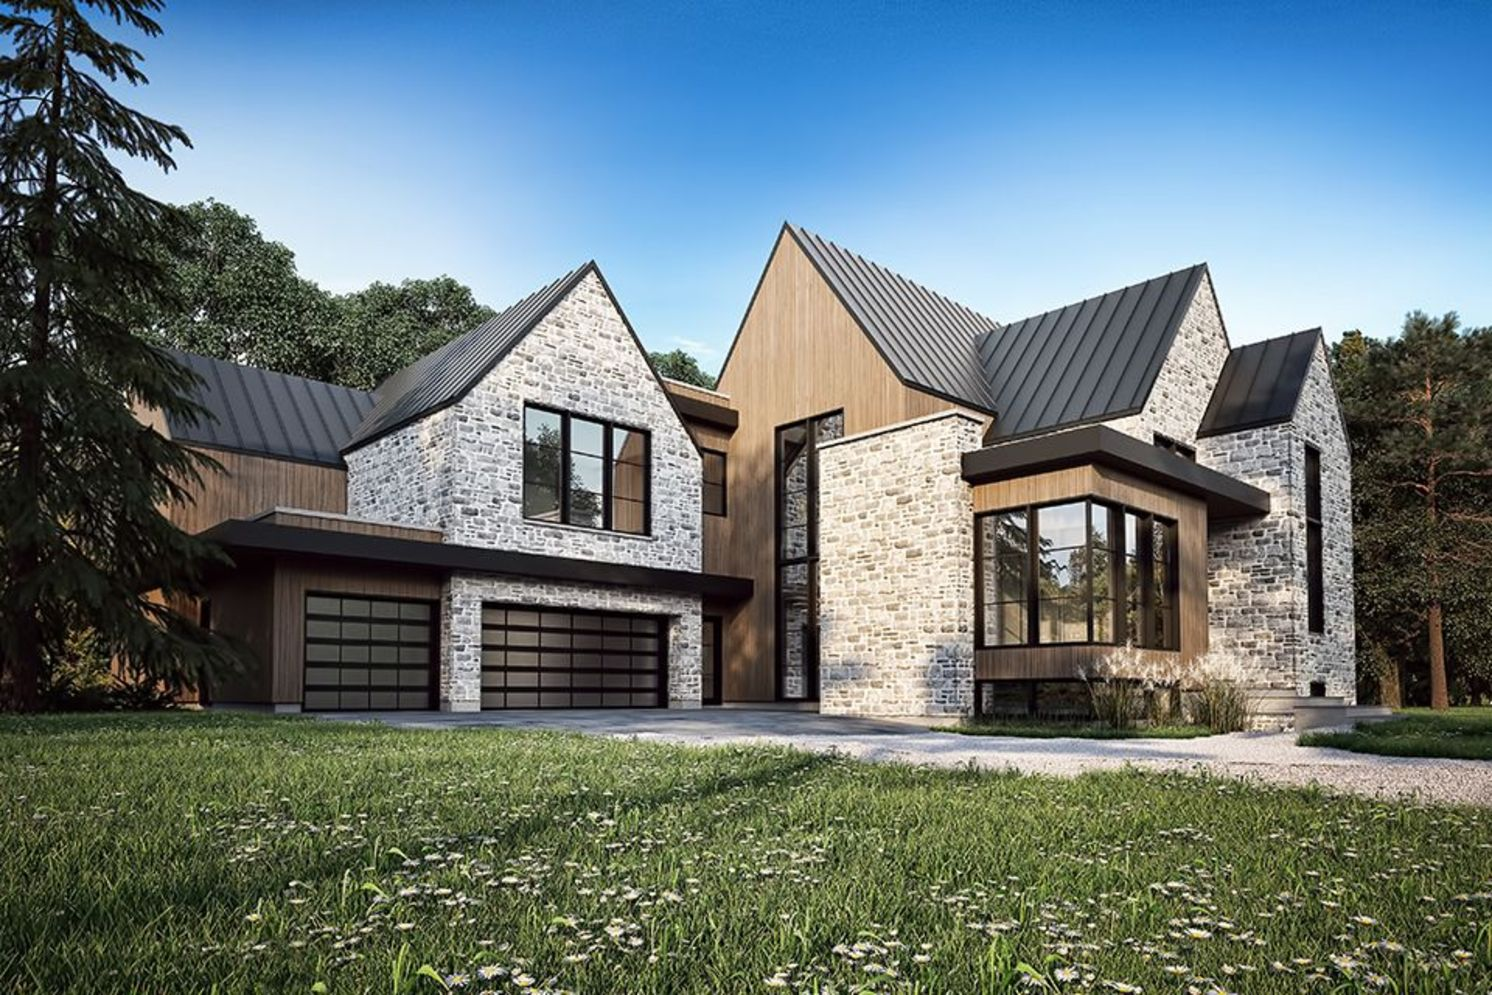 Modern house with new farmhouse exterior design pulling out country charm and warm welcoming display Image 26